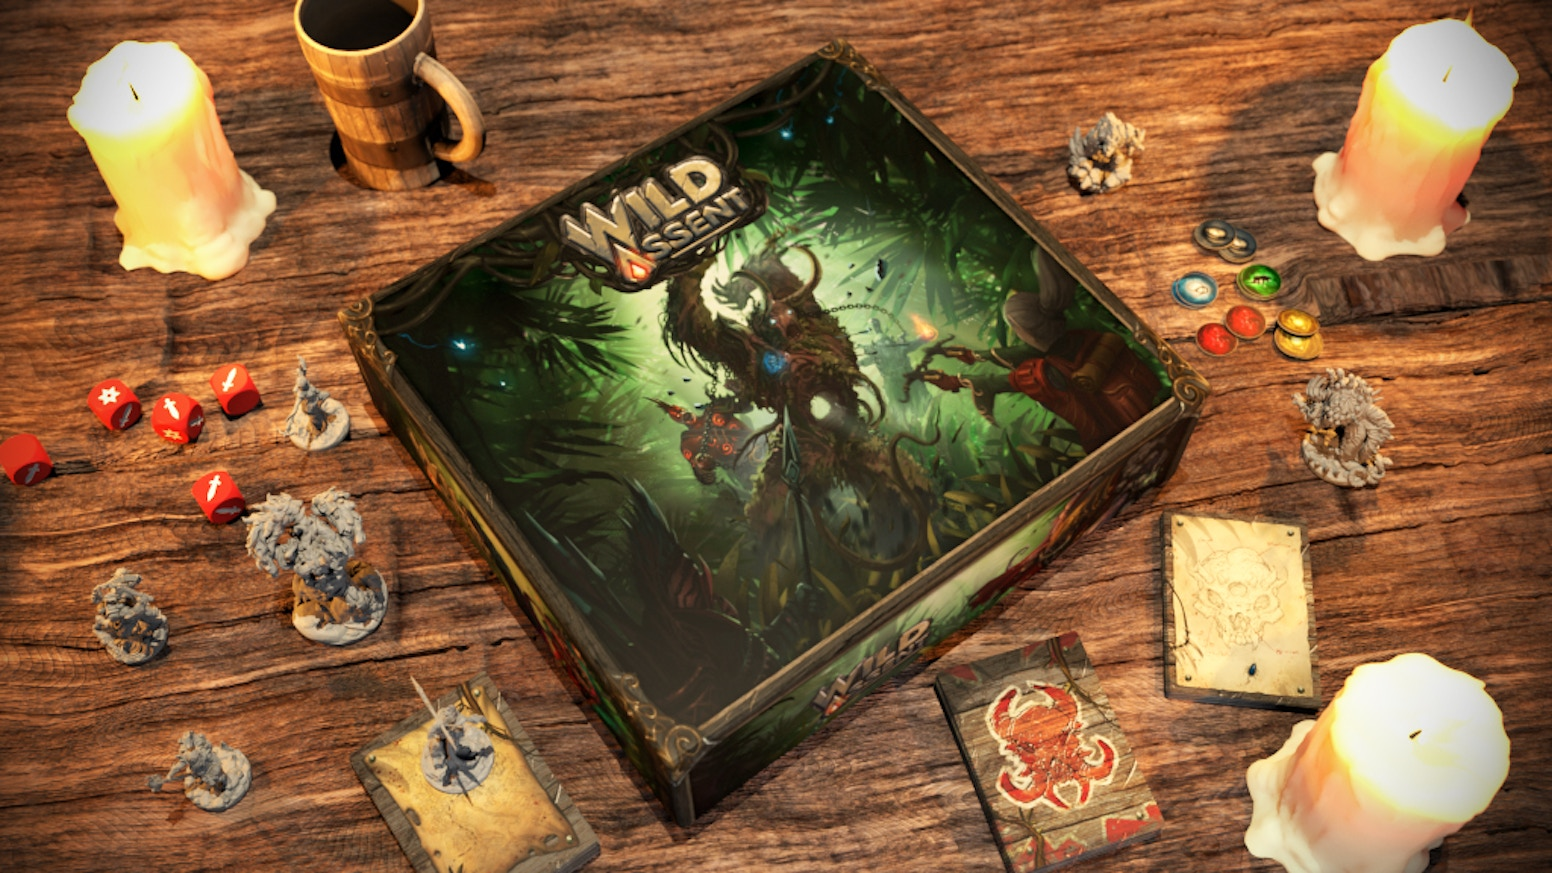 A 1-4 player board game with solo/cooperative and PvP game modes, beautiful miniatures and thrilling gameplay.